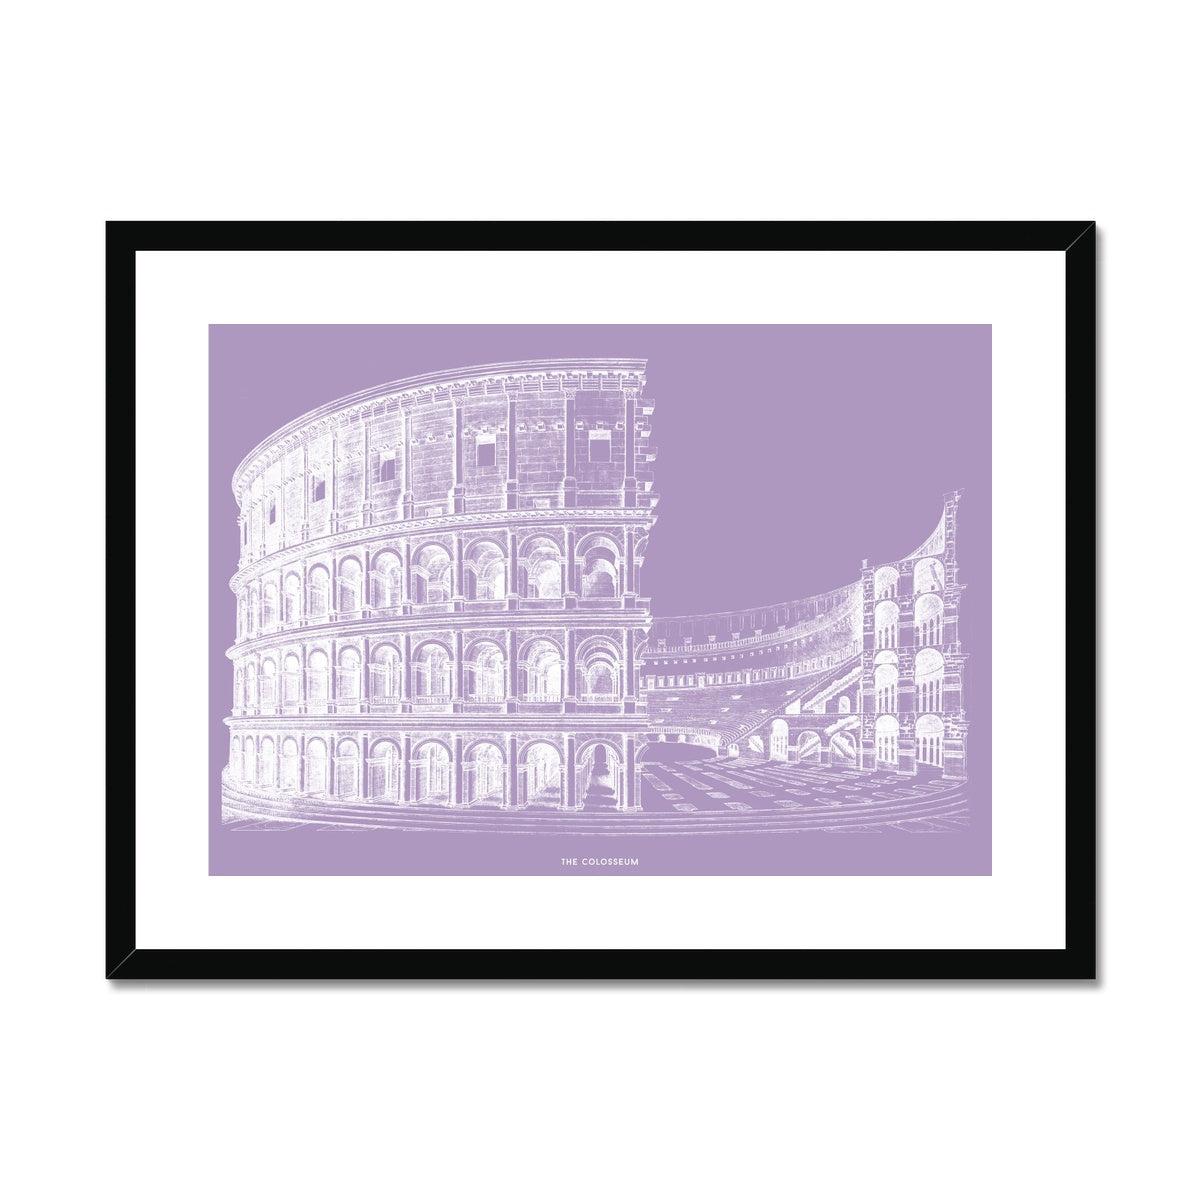 The Colosseum - Alternative Cross Section - Lavender -  Framed & Mounted Print